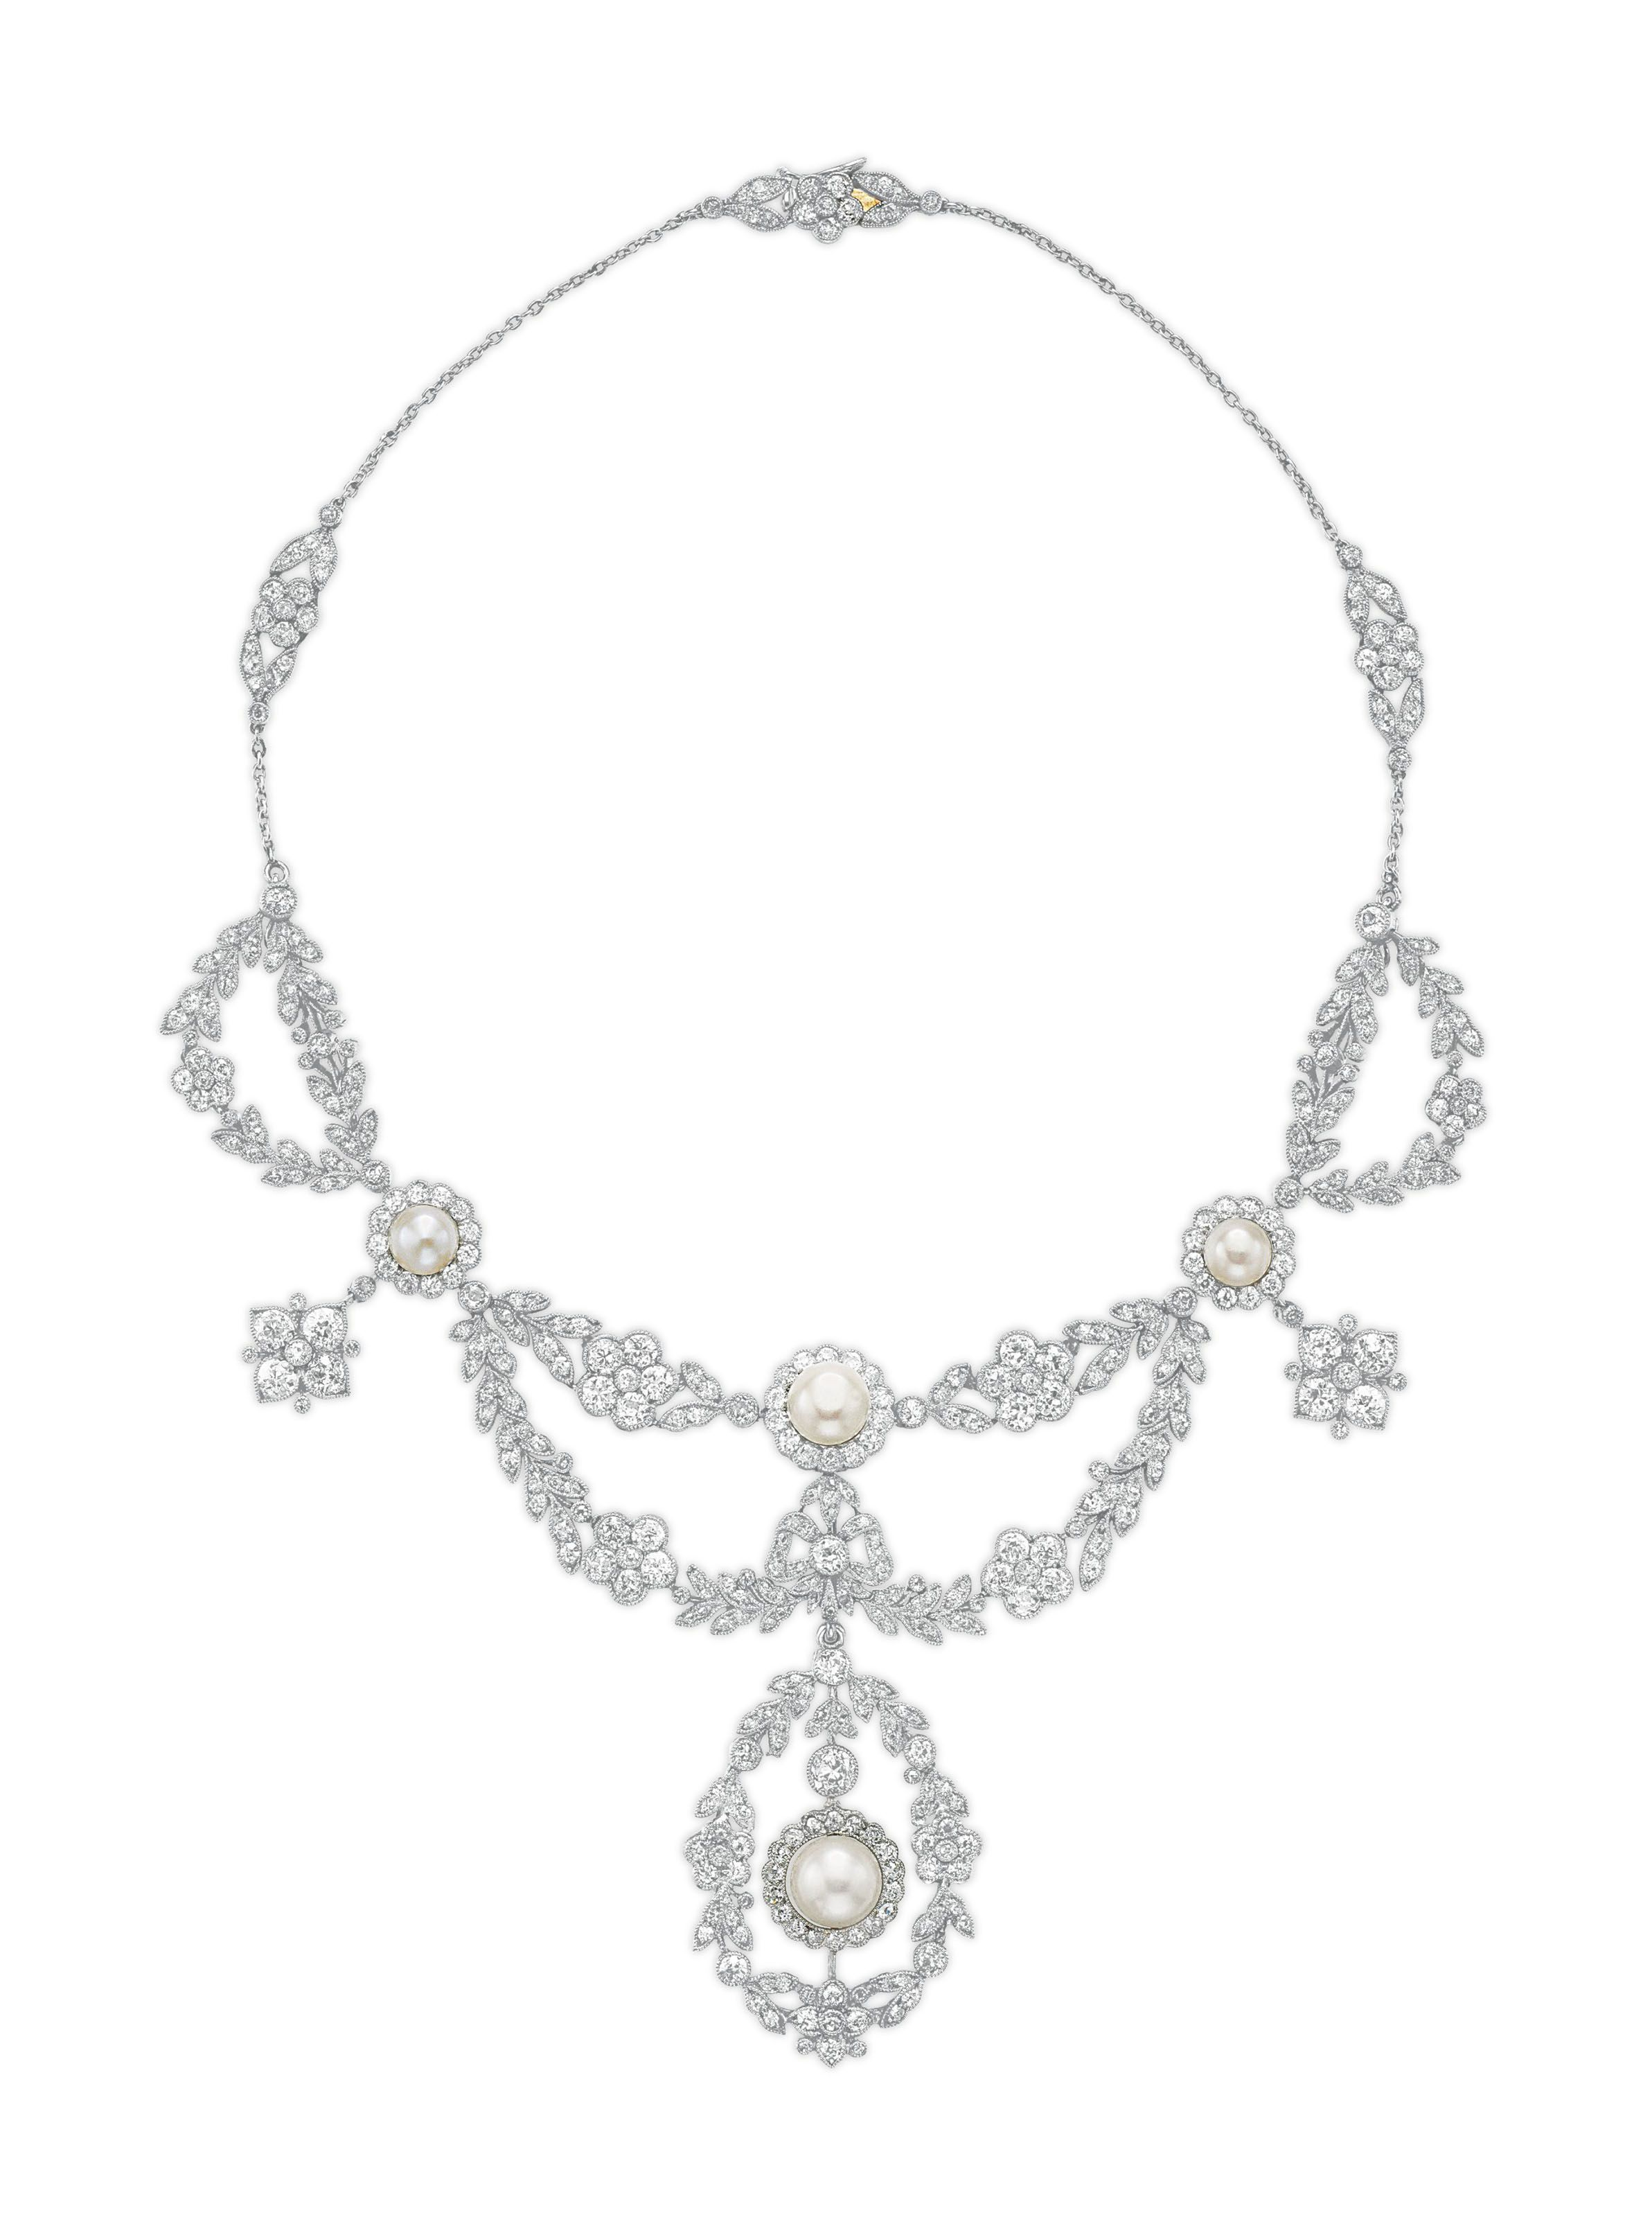 d6083517883a BELLE ÉPOQUE NATURAL PEARL AND DIAMOND NECKLACE